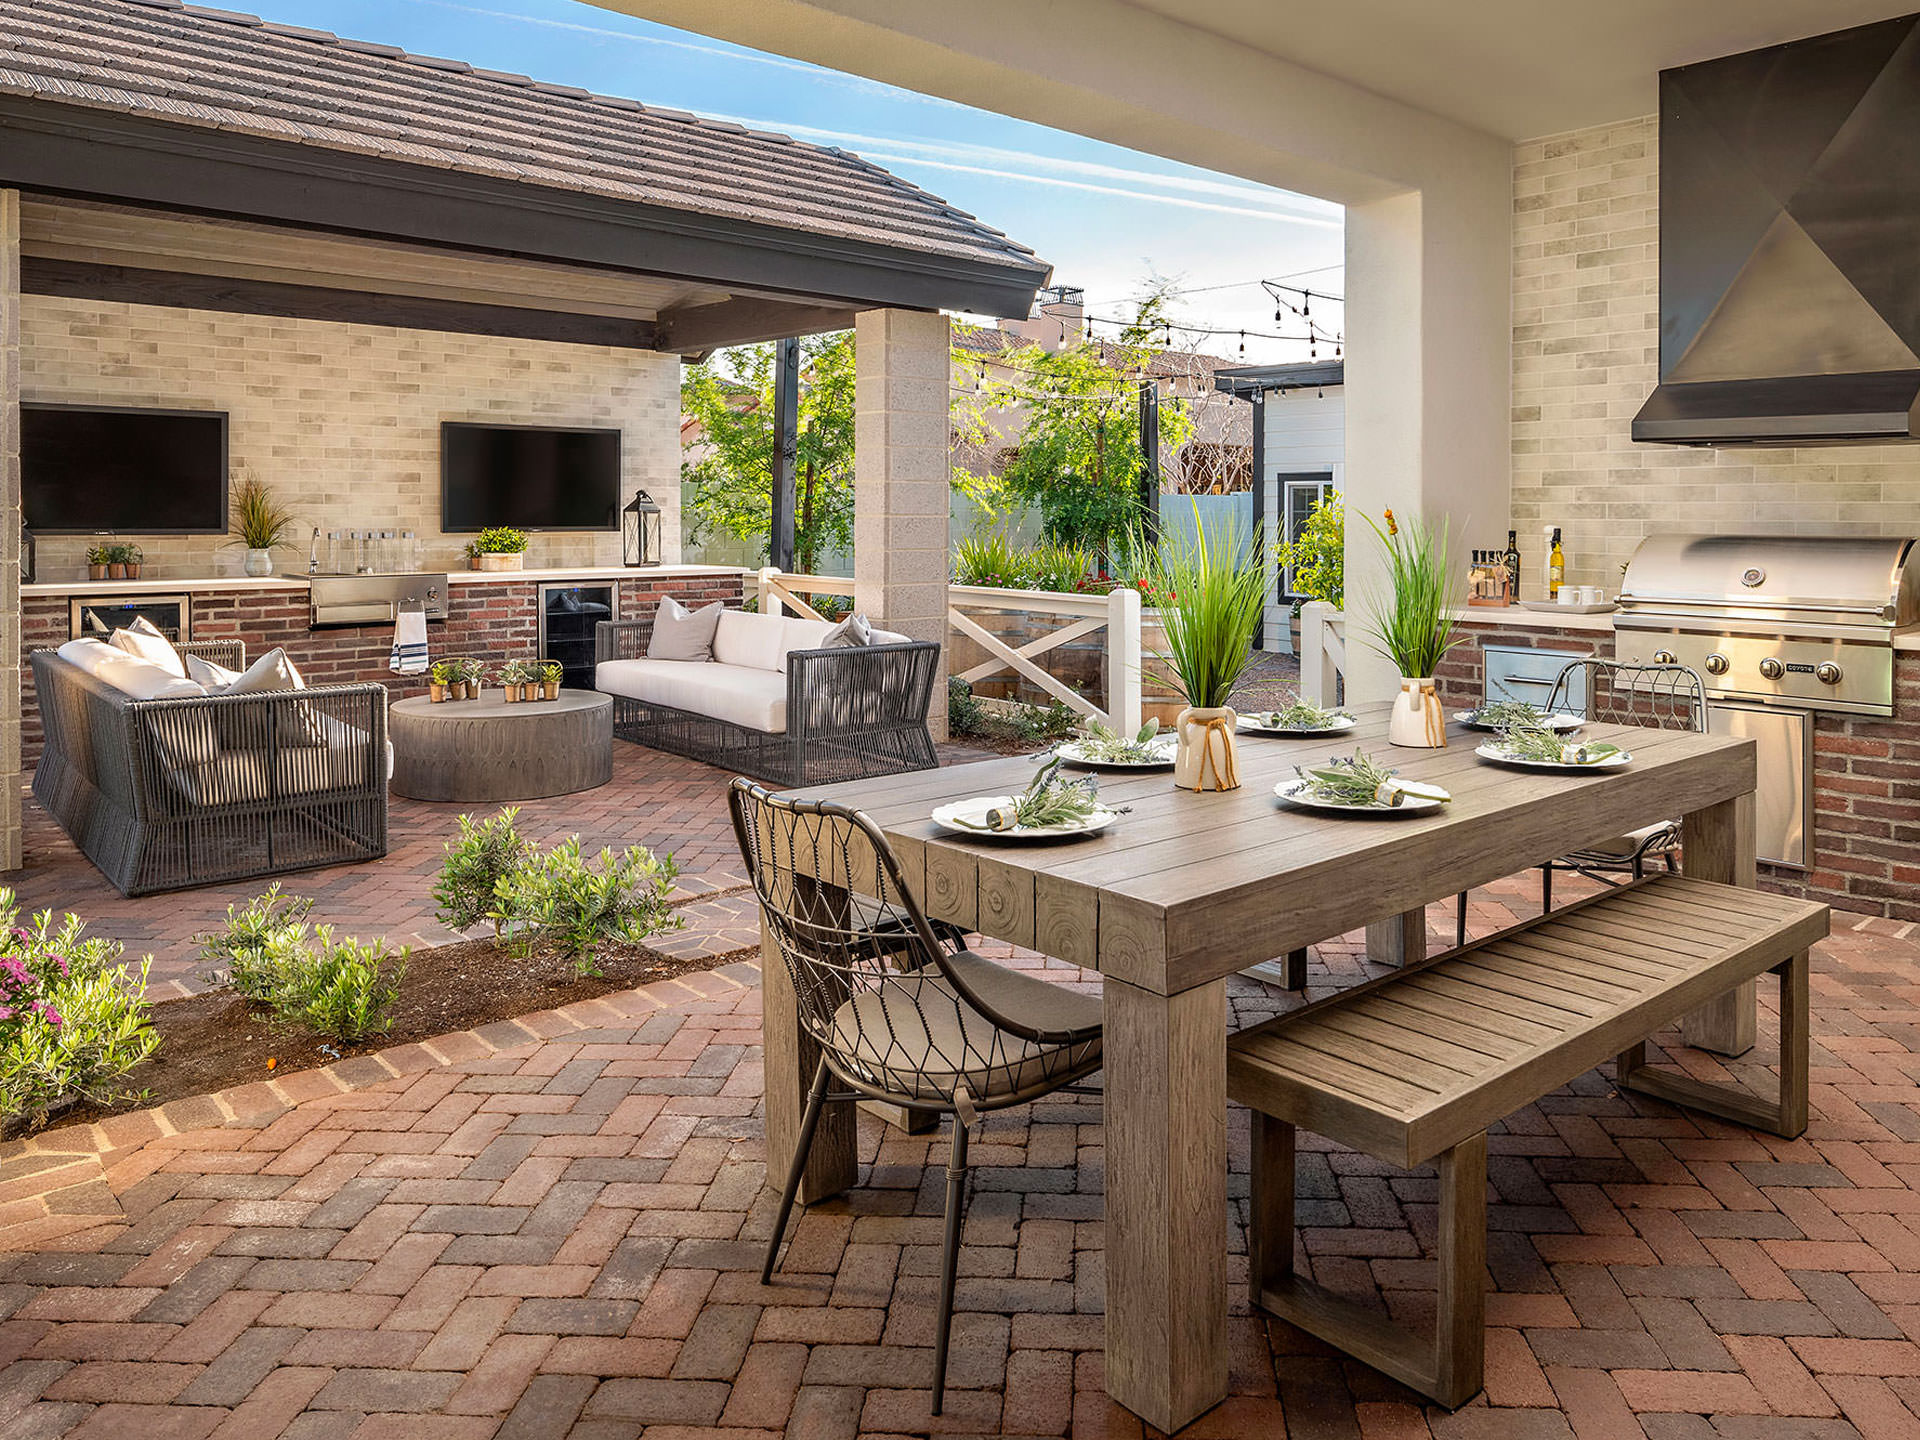 3rd Place - Outdoor Living Space